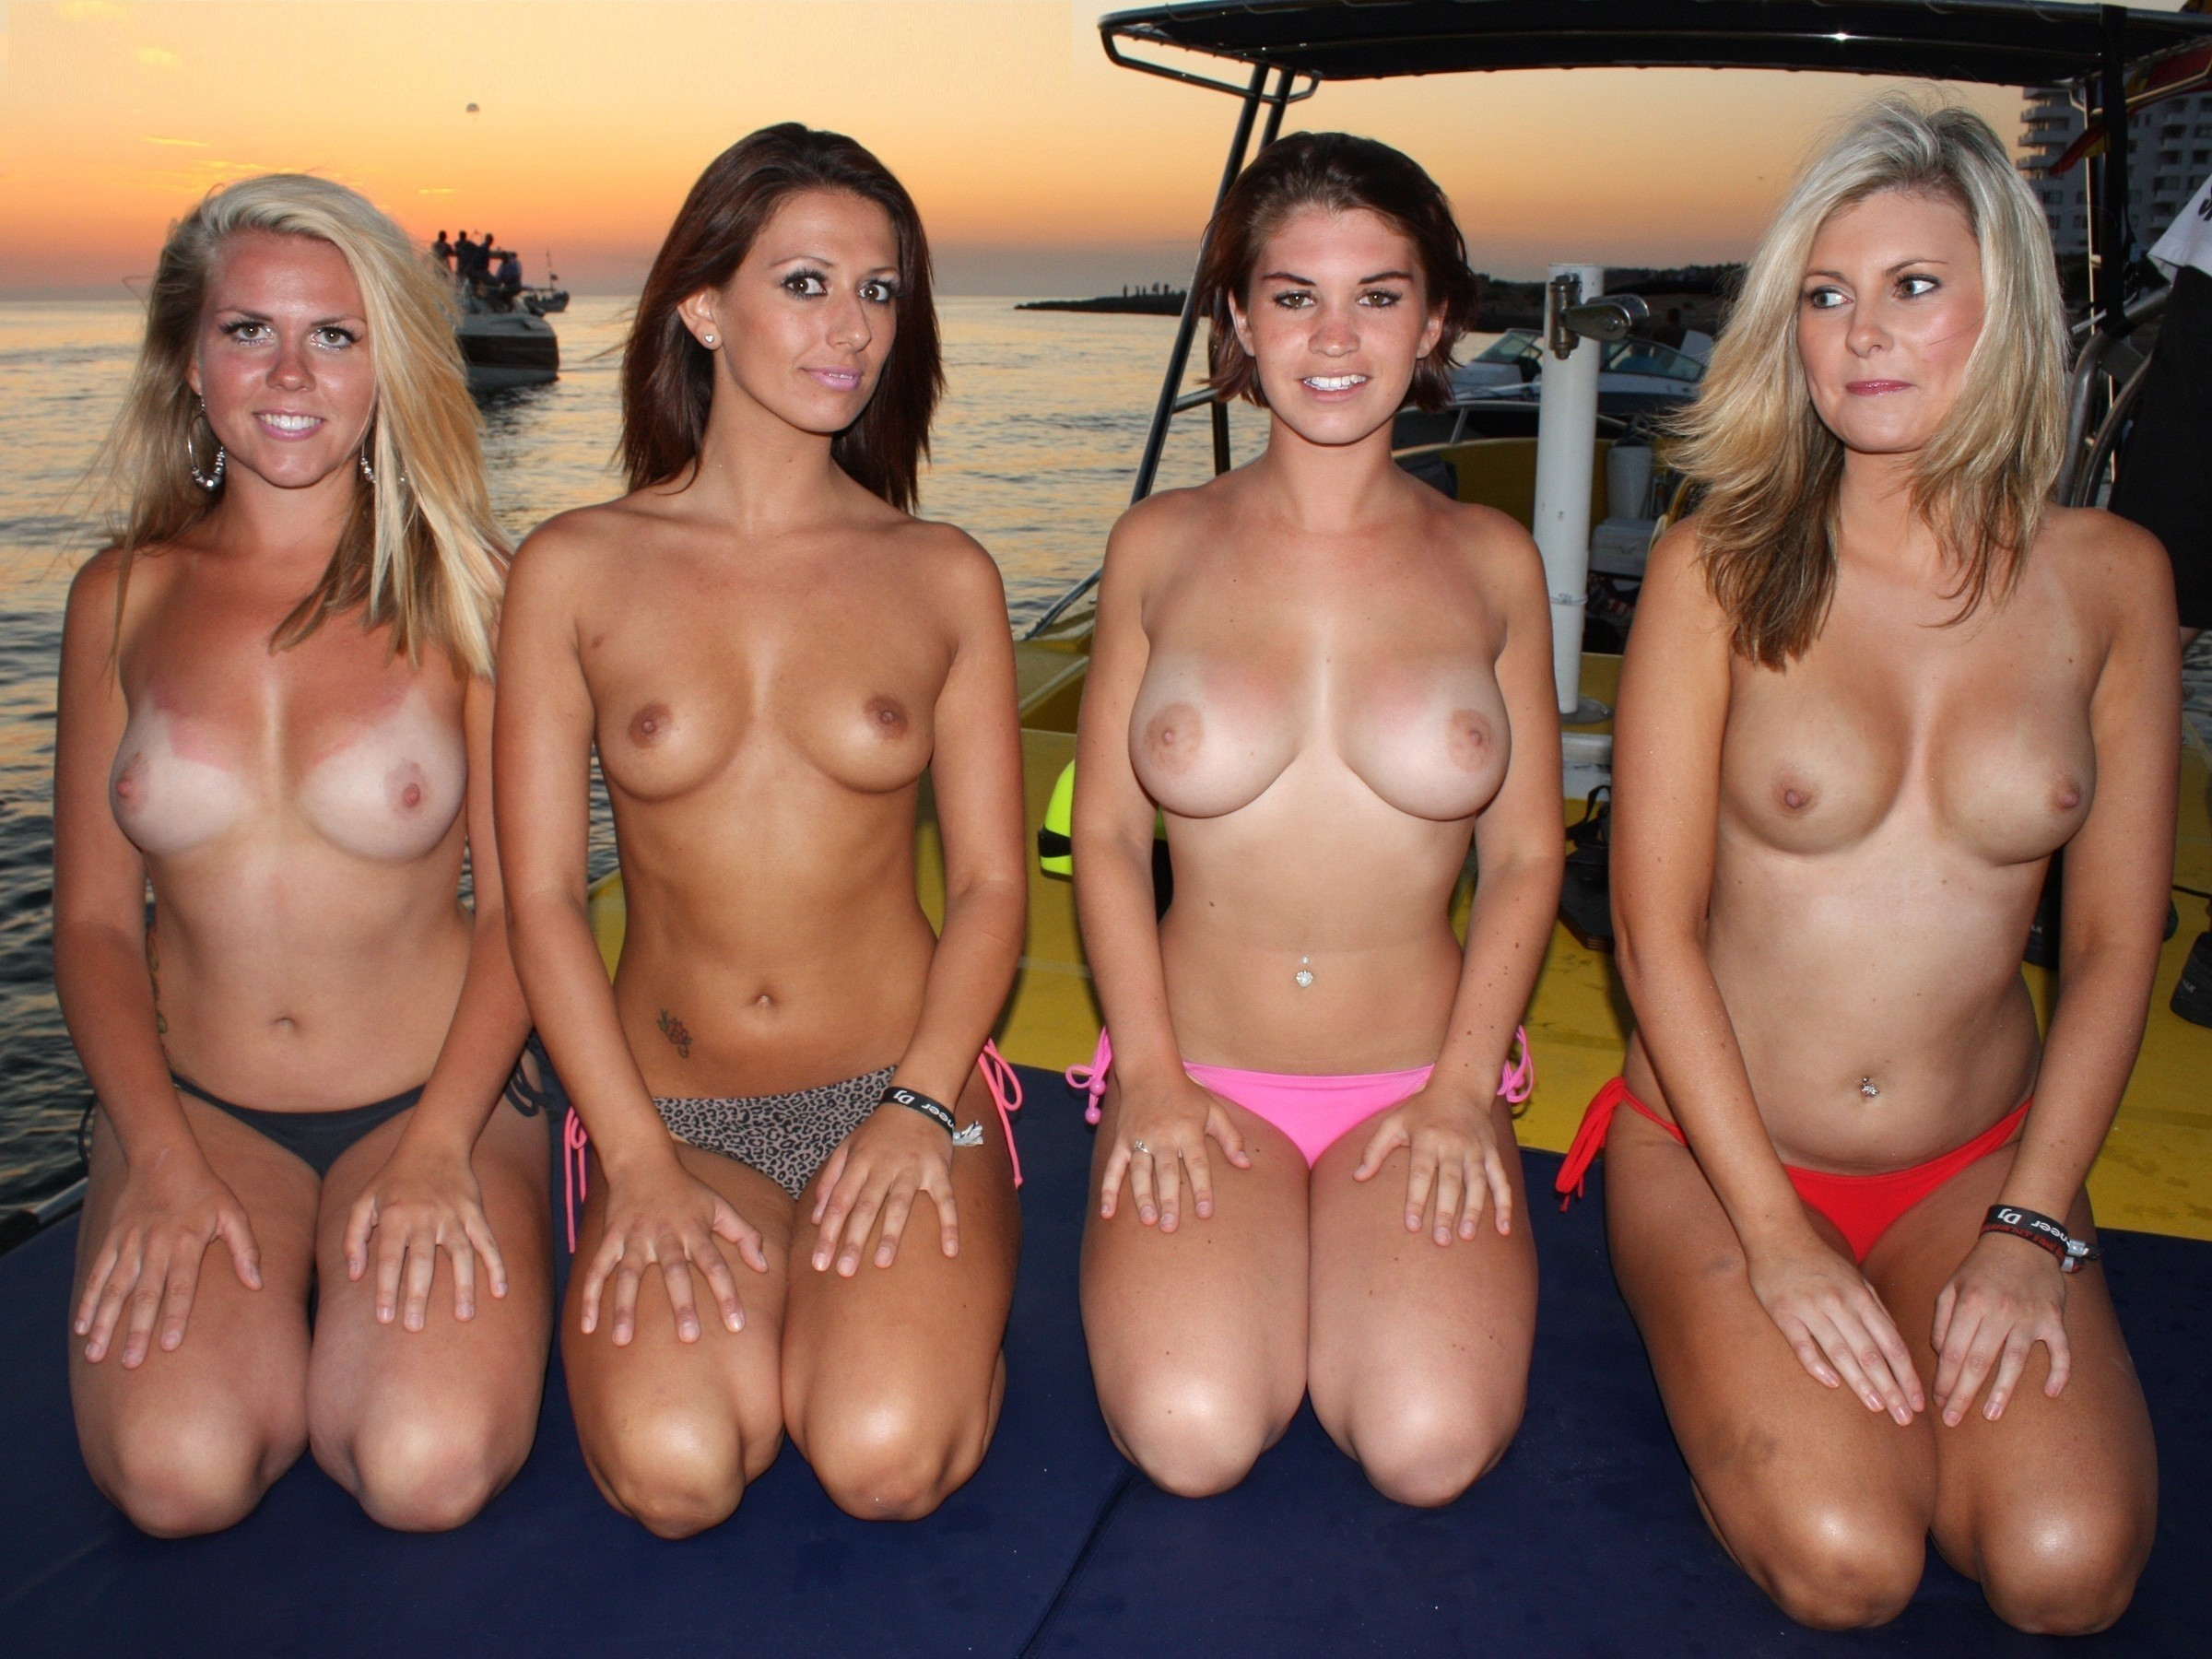 naked-girls-in-group-mix-vol3-66